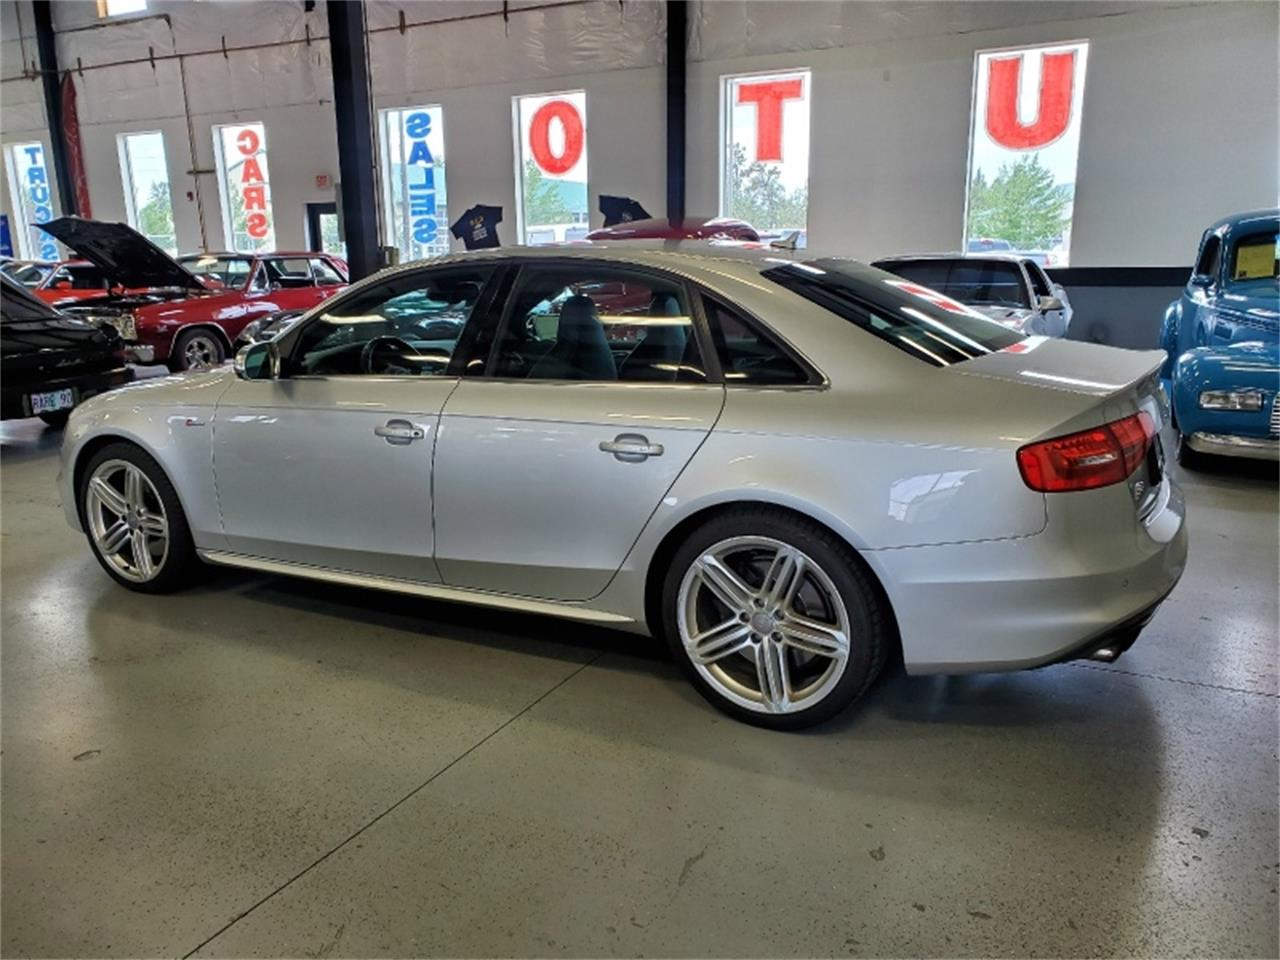 2014 Audi S4 (CC-1383308) for sale in Bend, Oregon